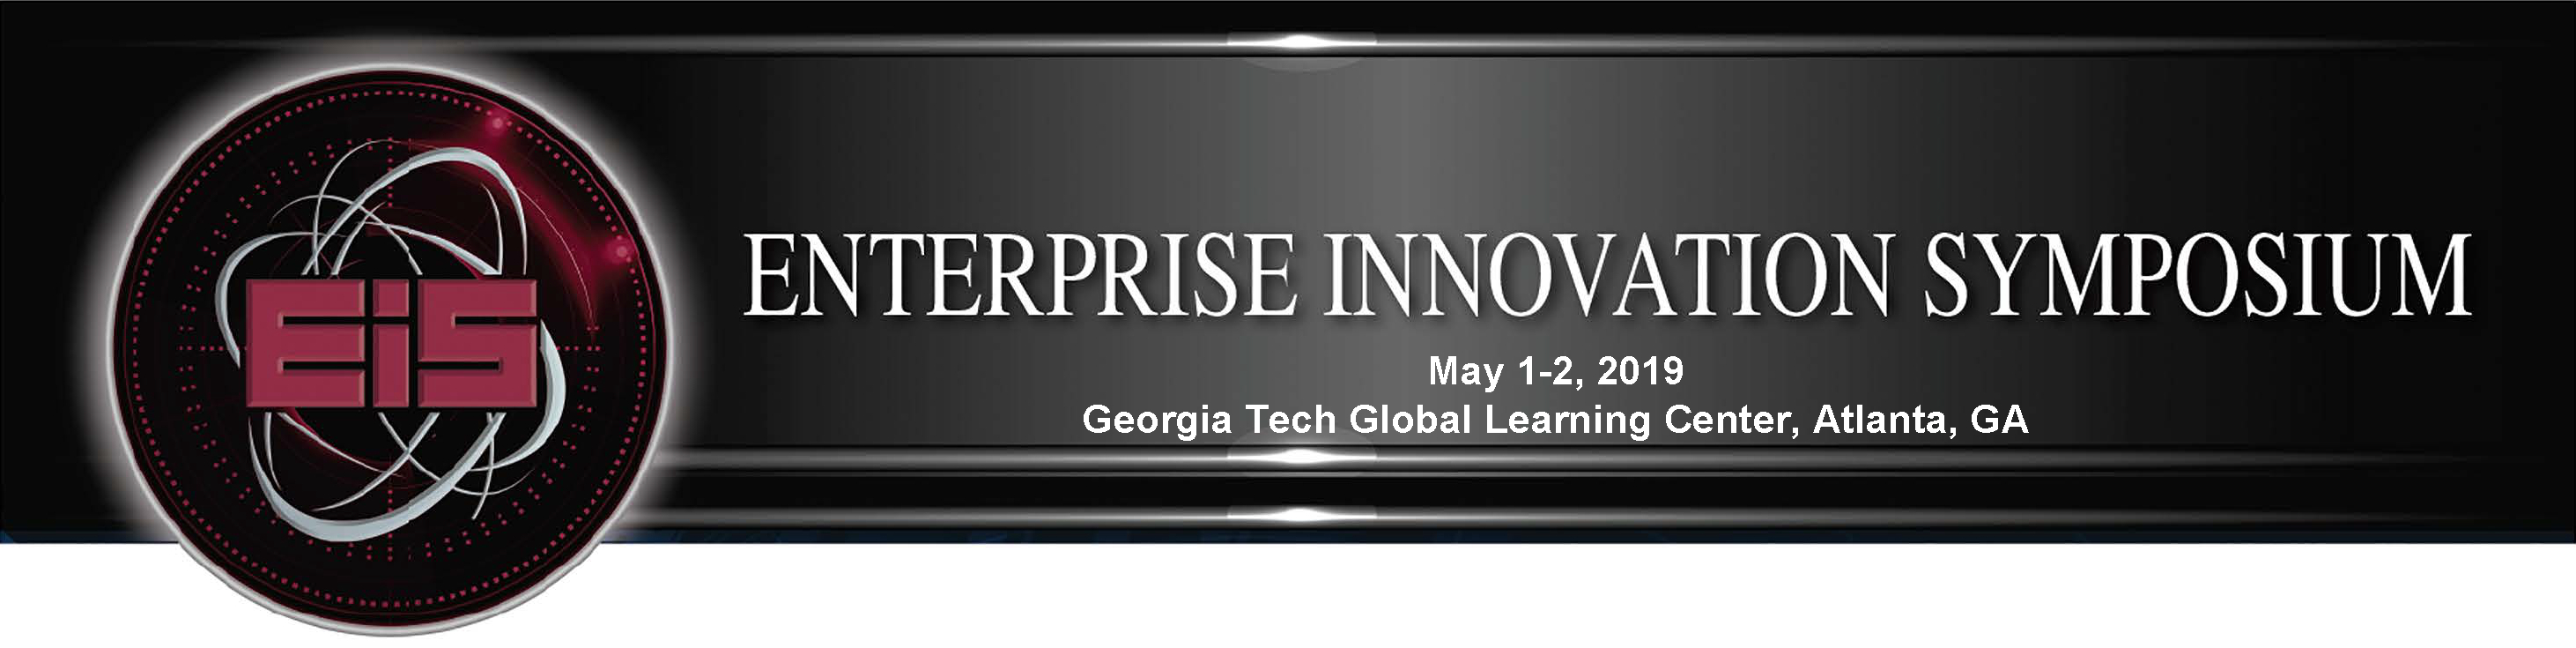 TENICA's 2019 Enterprise Innovation Symposium (EIS 2019)